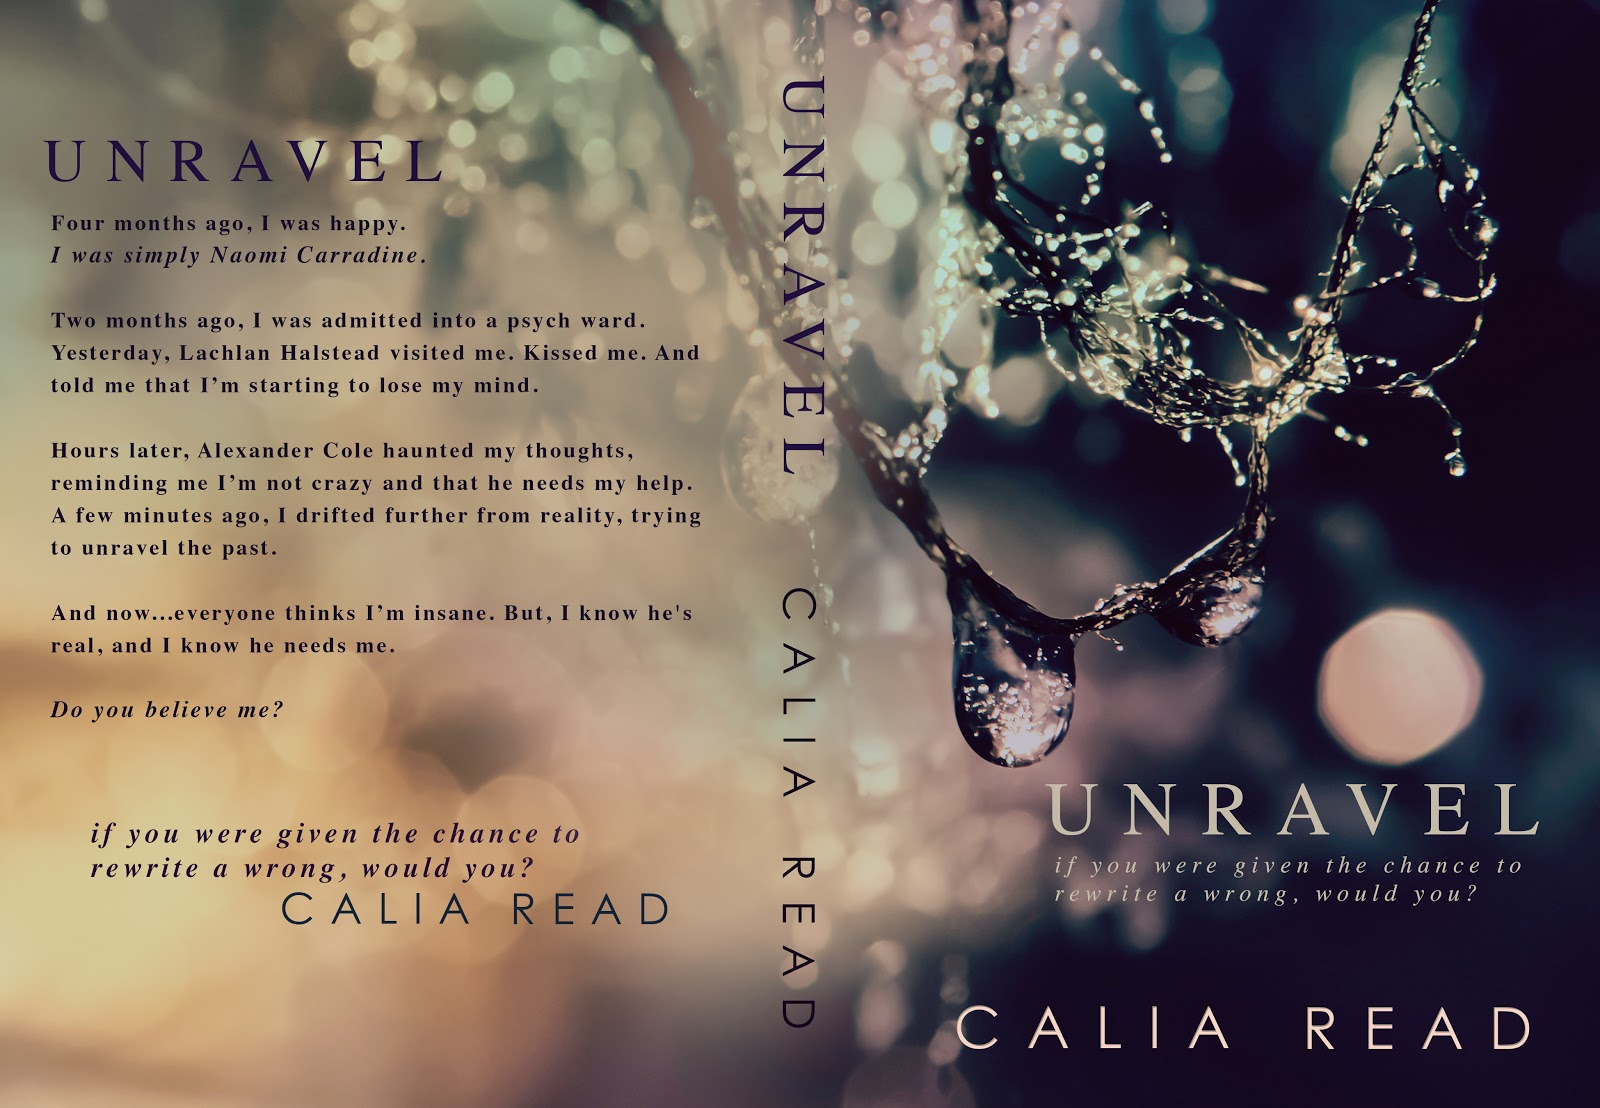 Calia read goodreads giveaways